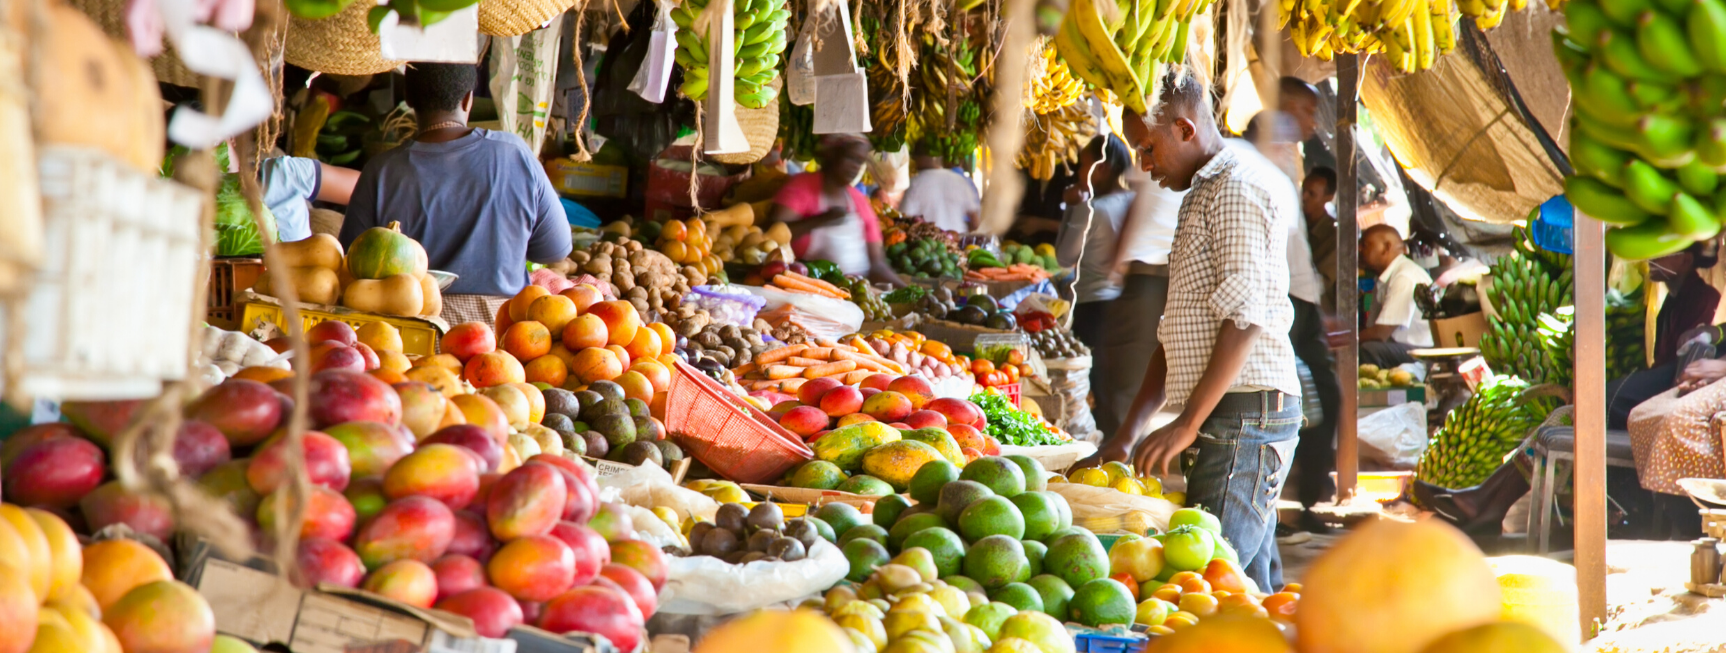 An image of a busy African market. There are a variety of colourful fruit on sale and several customers inspecting the goods on display.